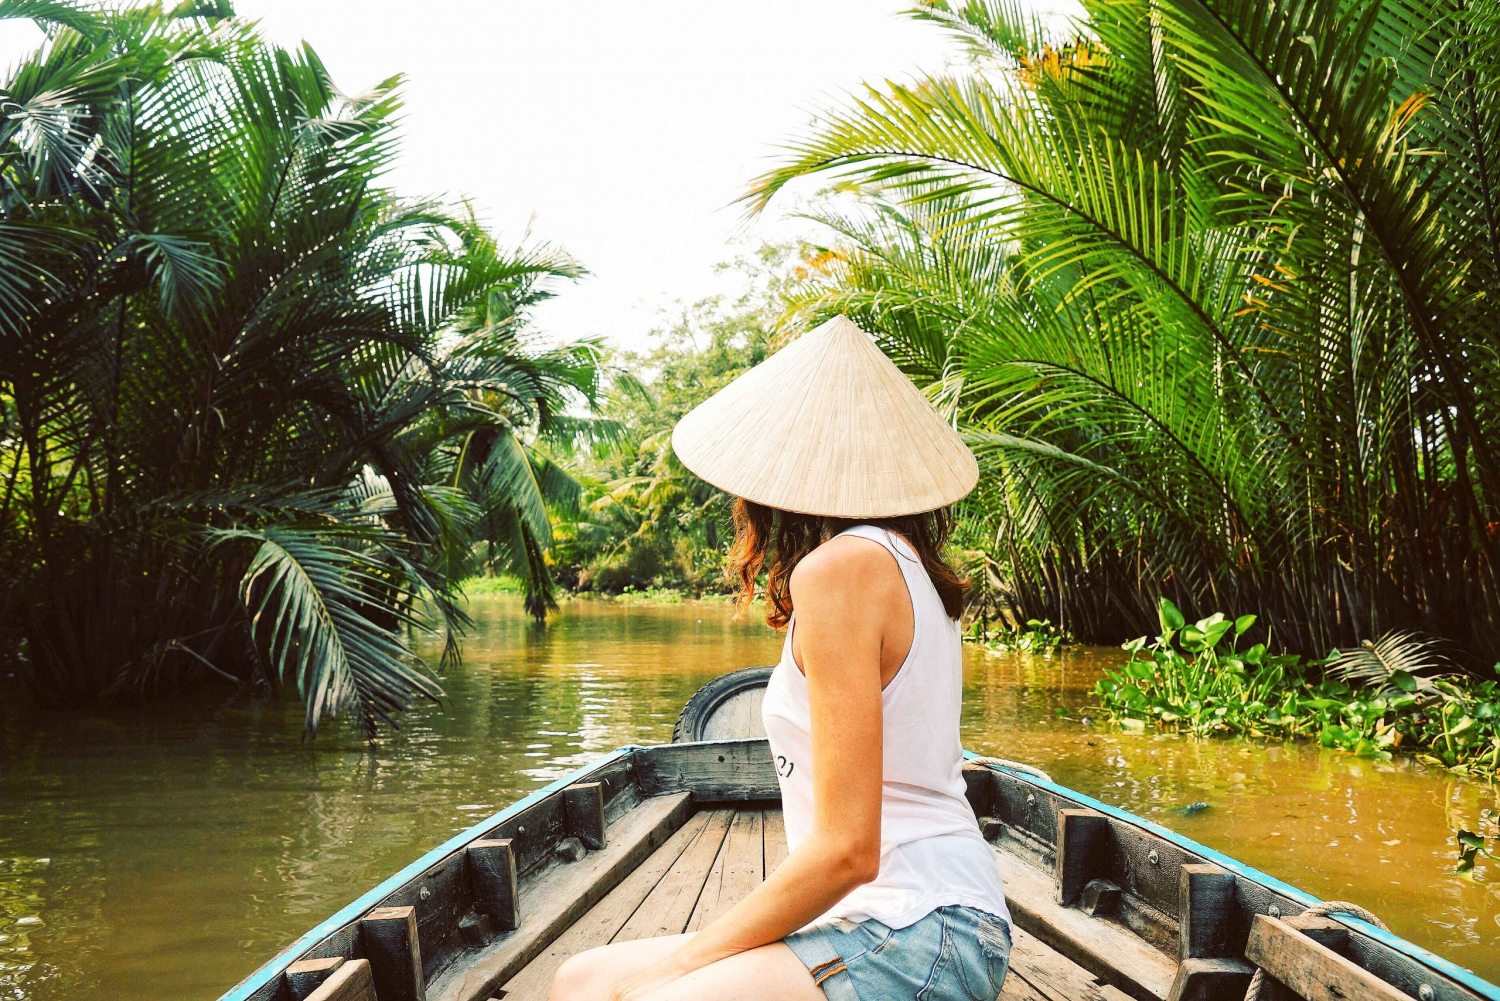 Mekong Delta Small Group Tour to My Tho and Ben Tre